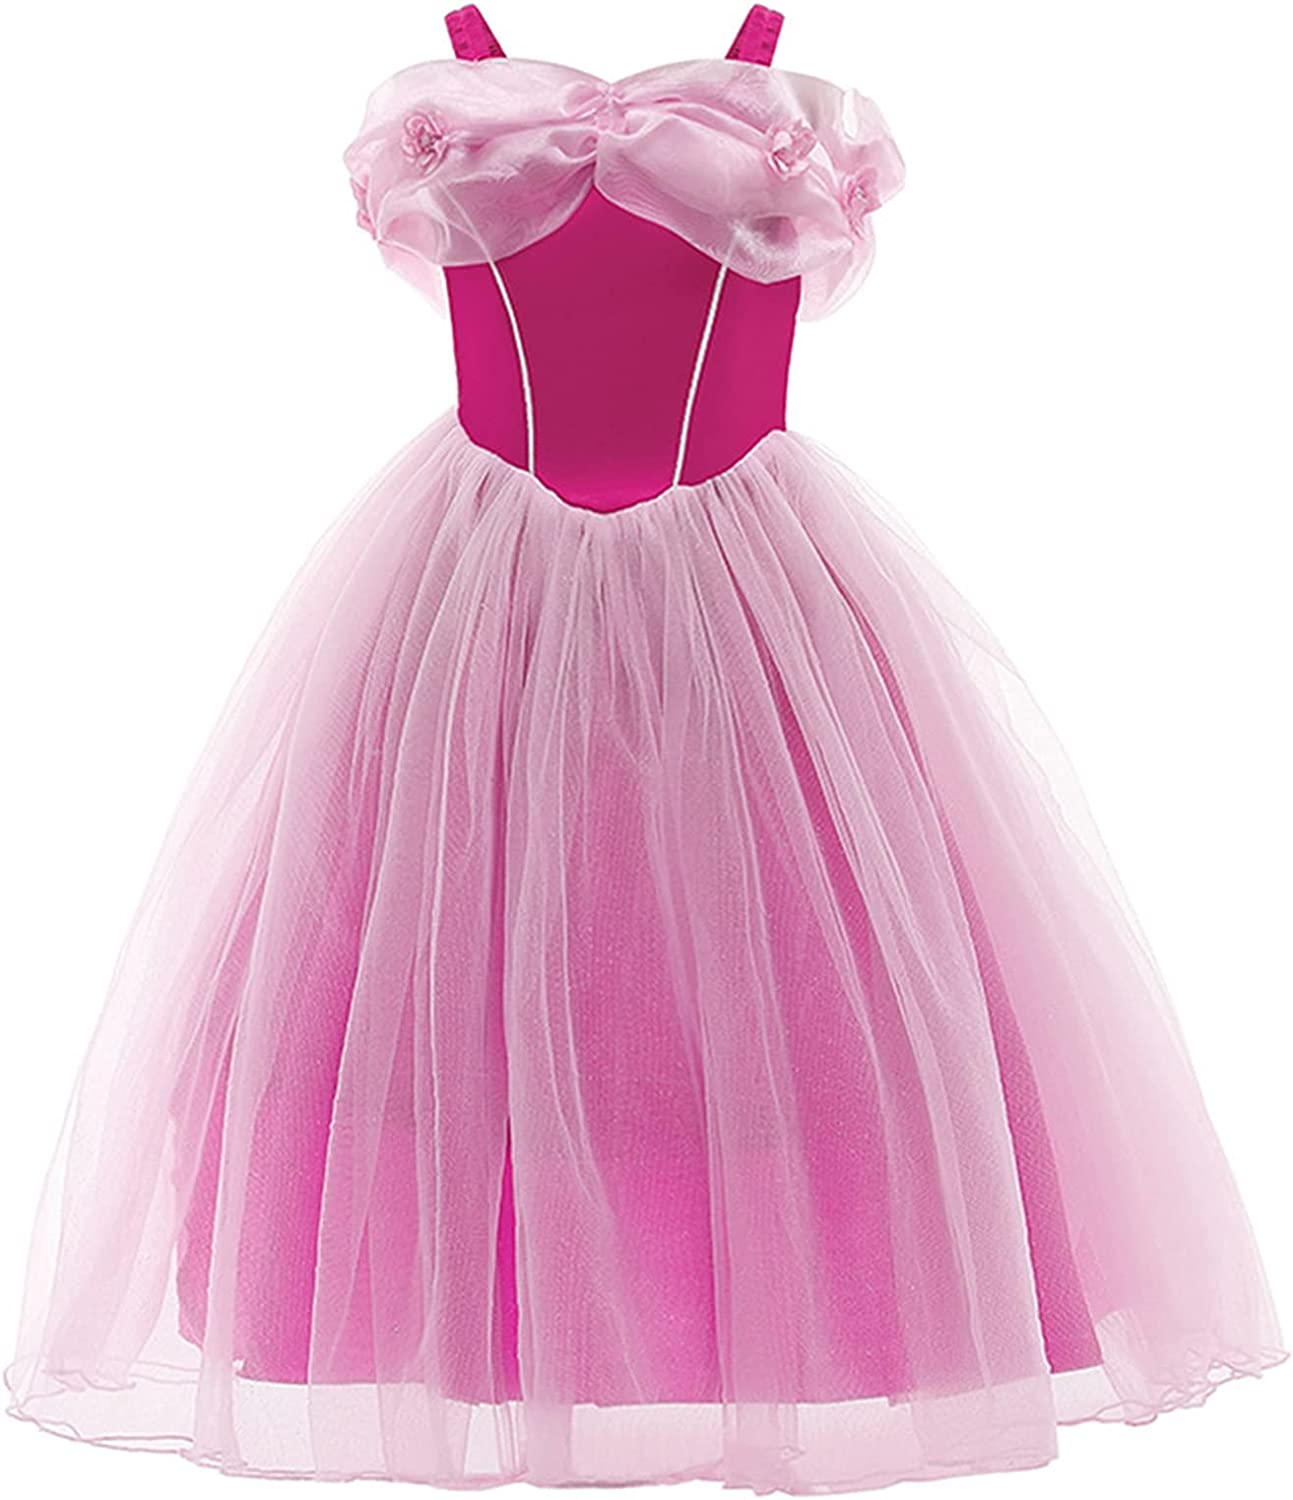 CHICTRY Kids Girls Off Shoulder Tulle Princess Dress Dance Birthday Party Dress Up Maxi Gowns